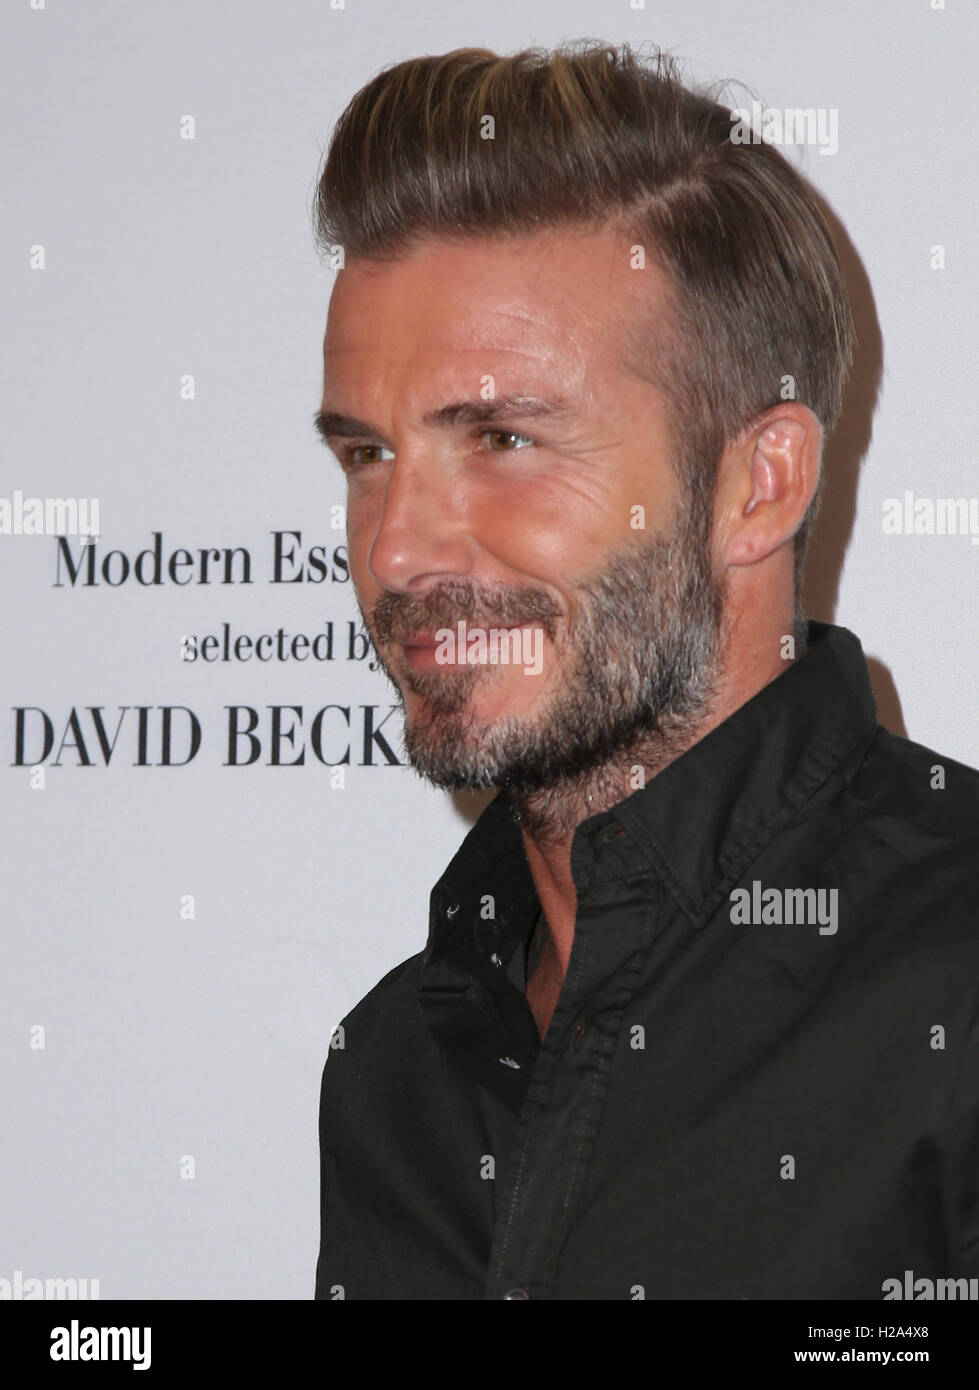 Los Angeles Usa 26th September 16 David Beckham Launches New H M Modern Essentials Campaign At H M On September 26 16 In Los Angeles California Credit Mediapunch Inc Alamy Live News Stock Photo Alamy